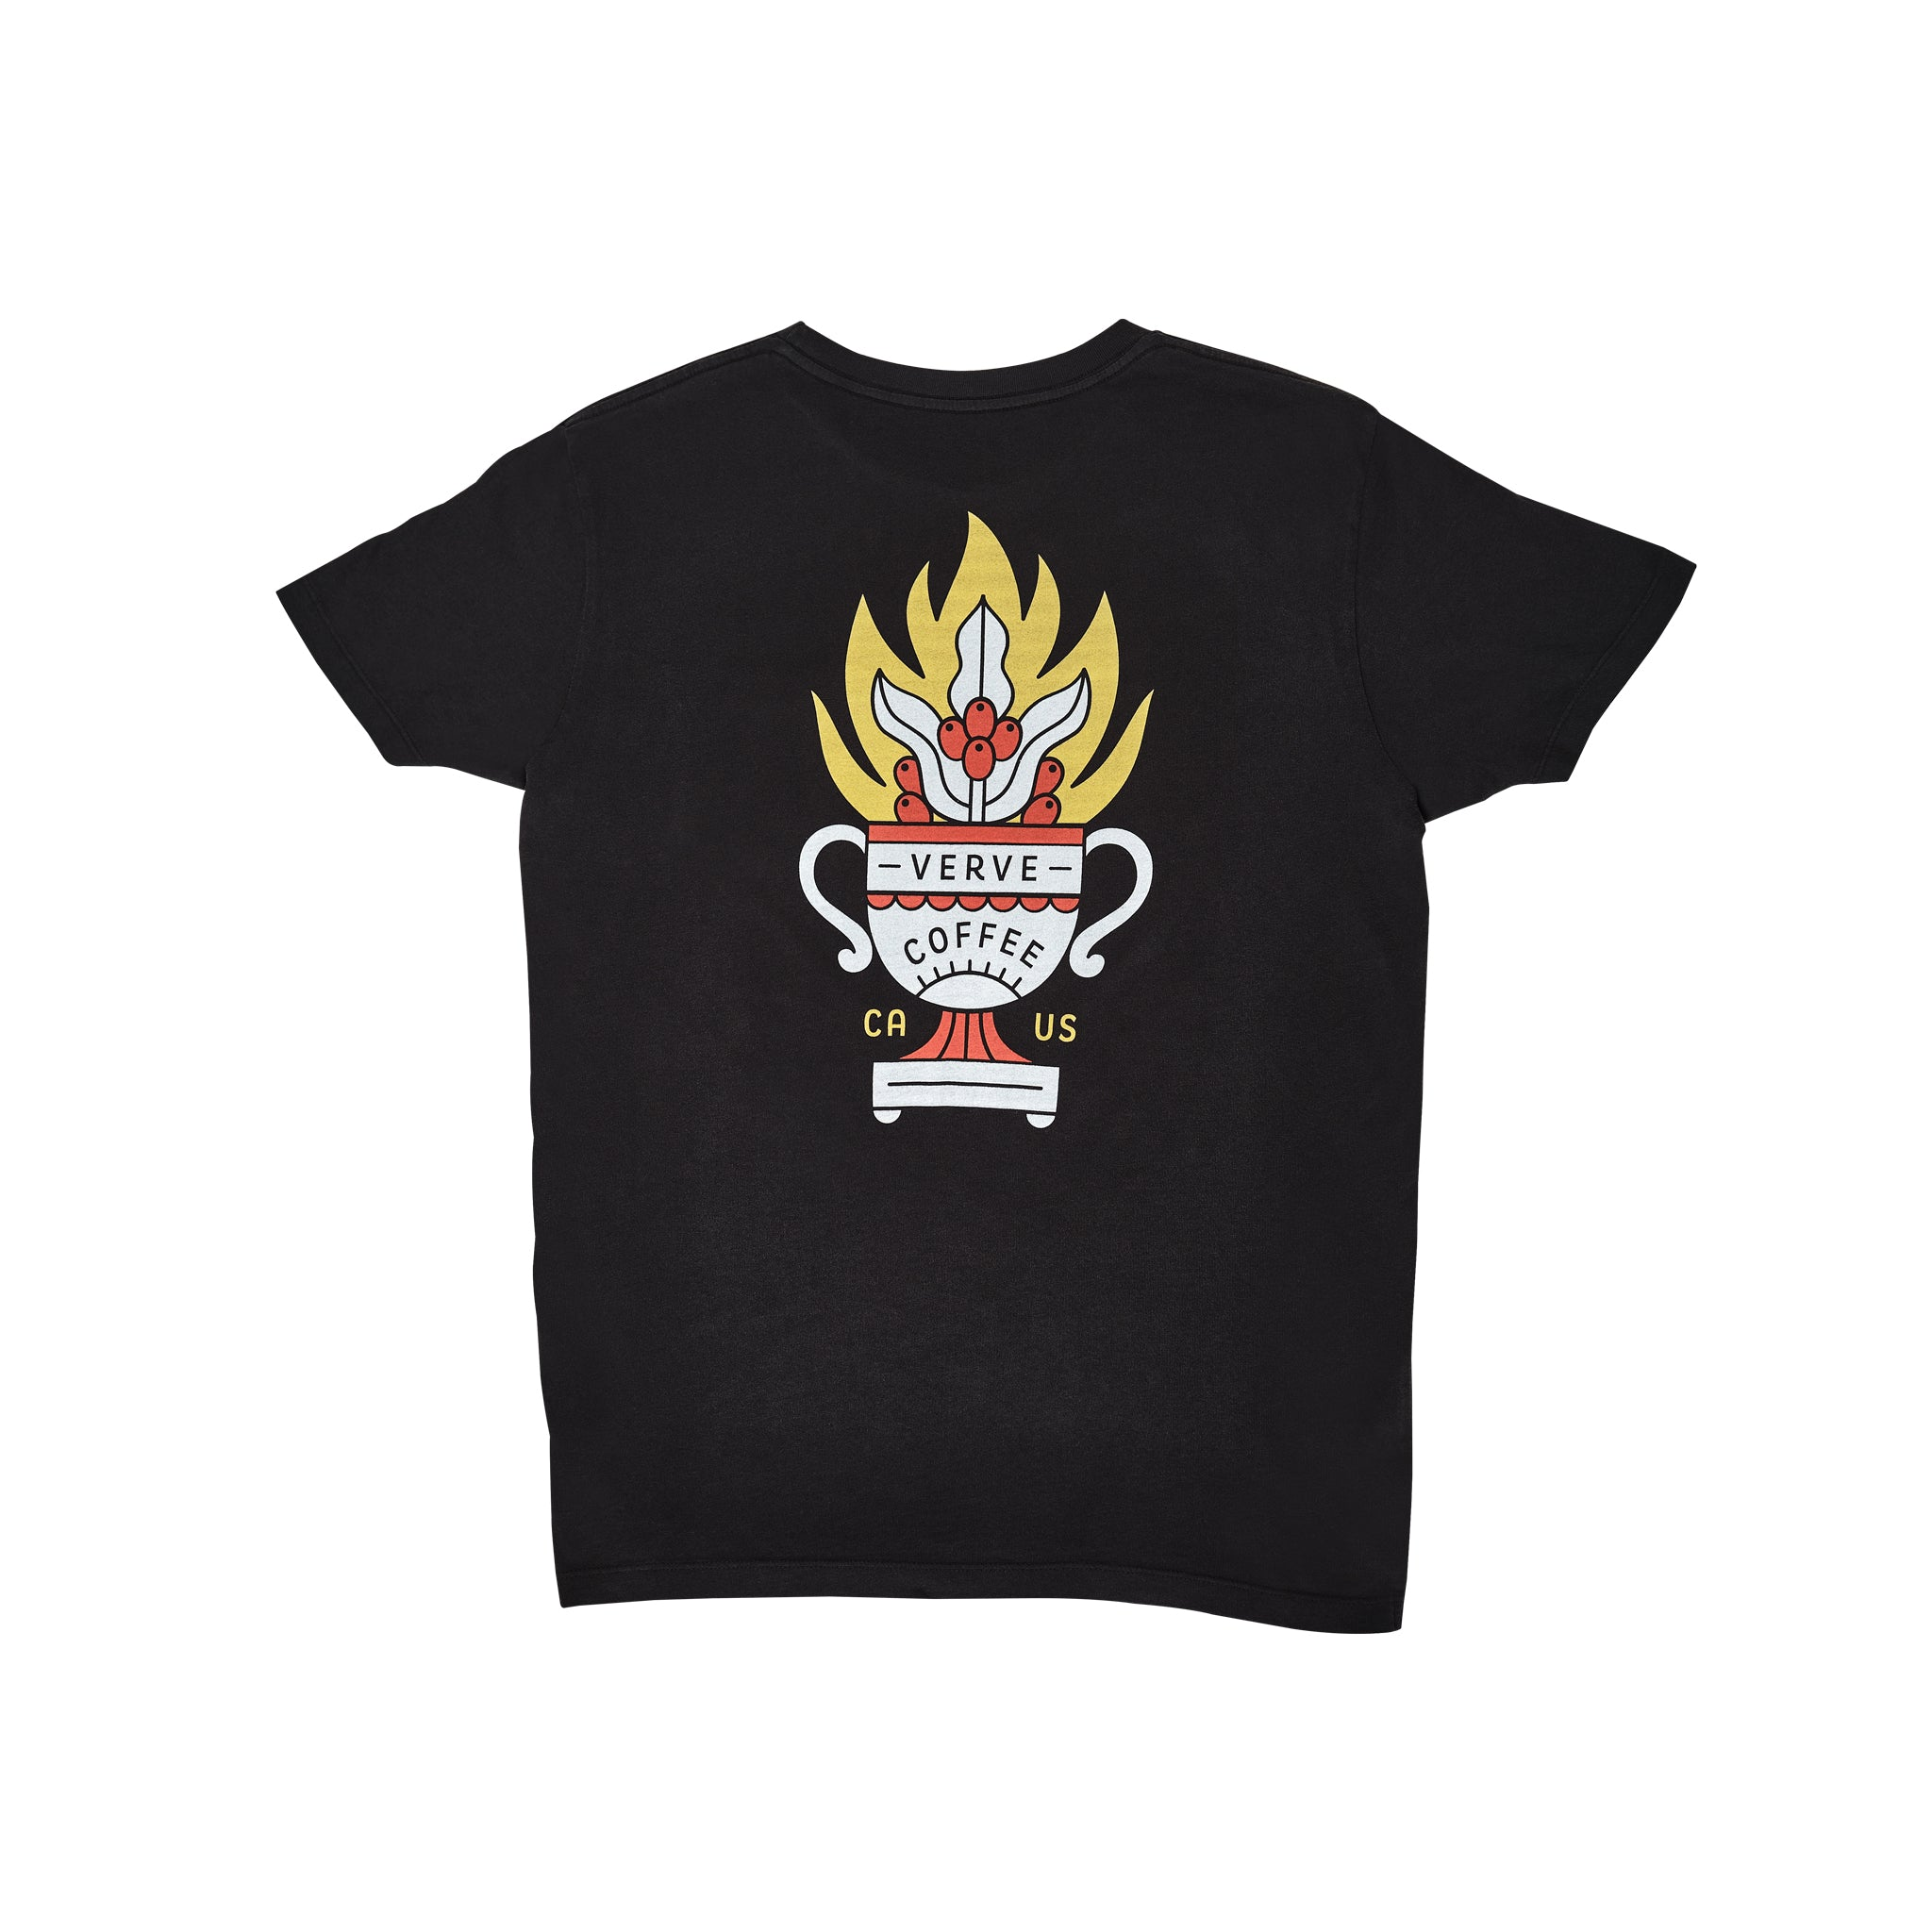 The Fuego Pocket Tee